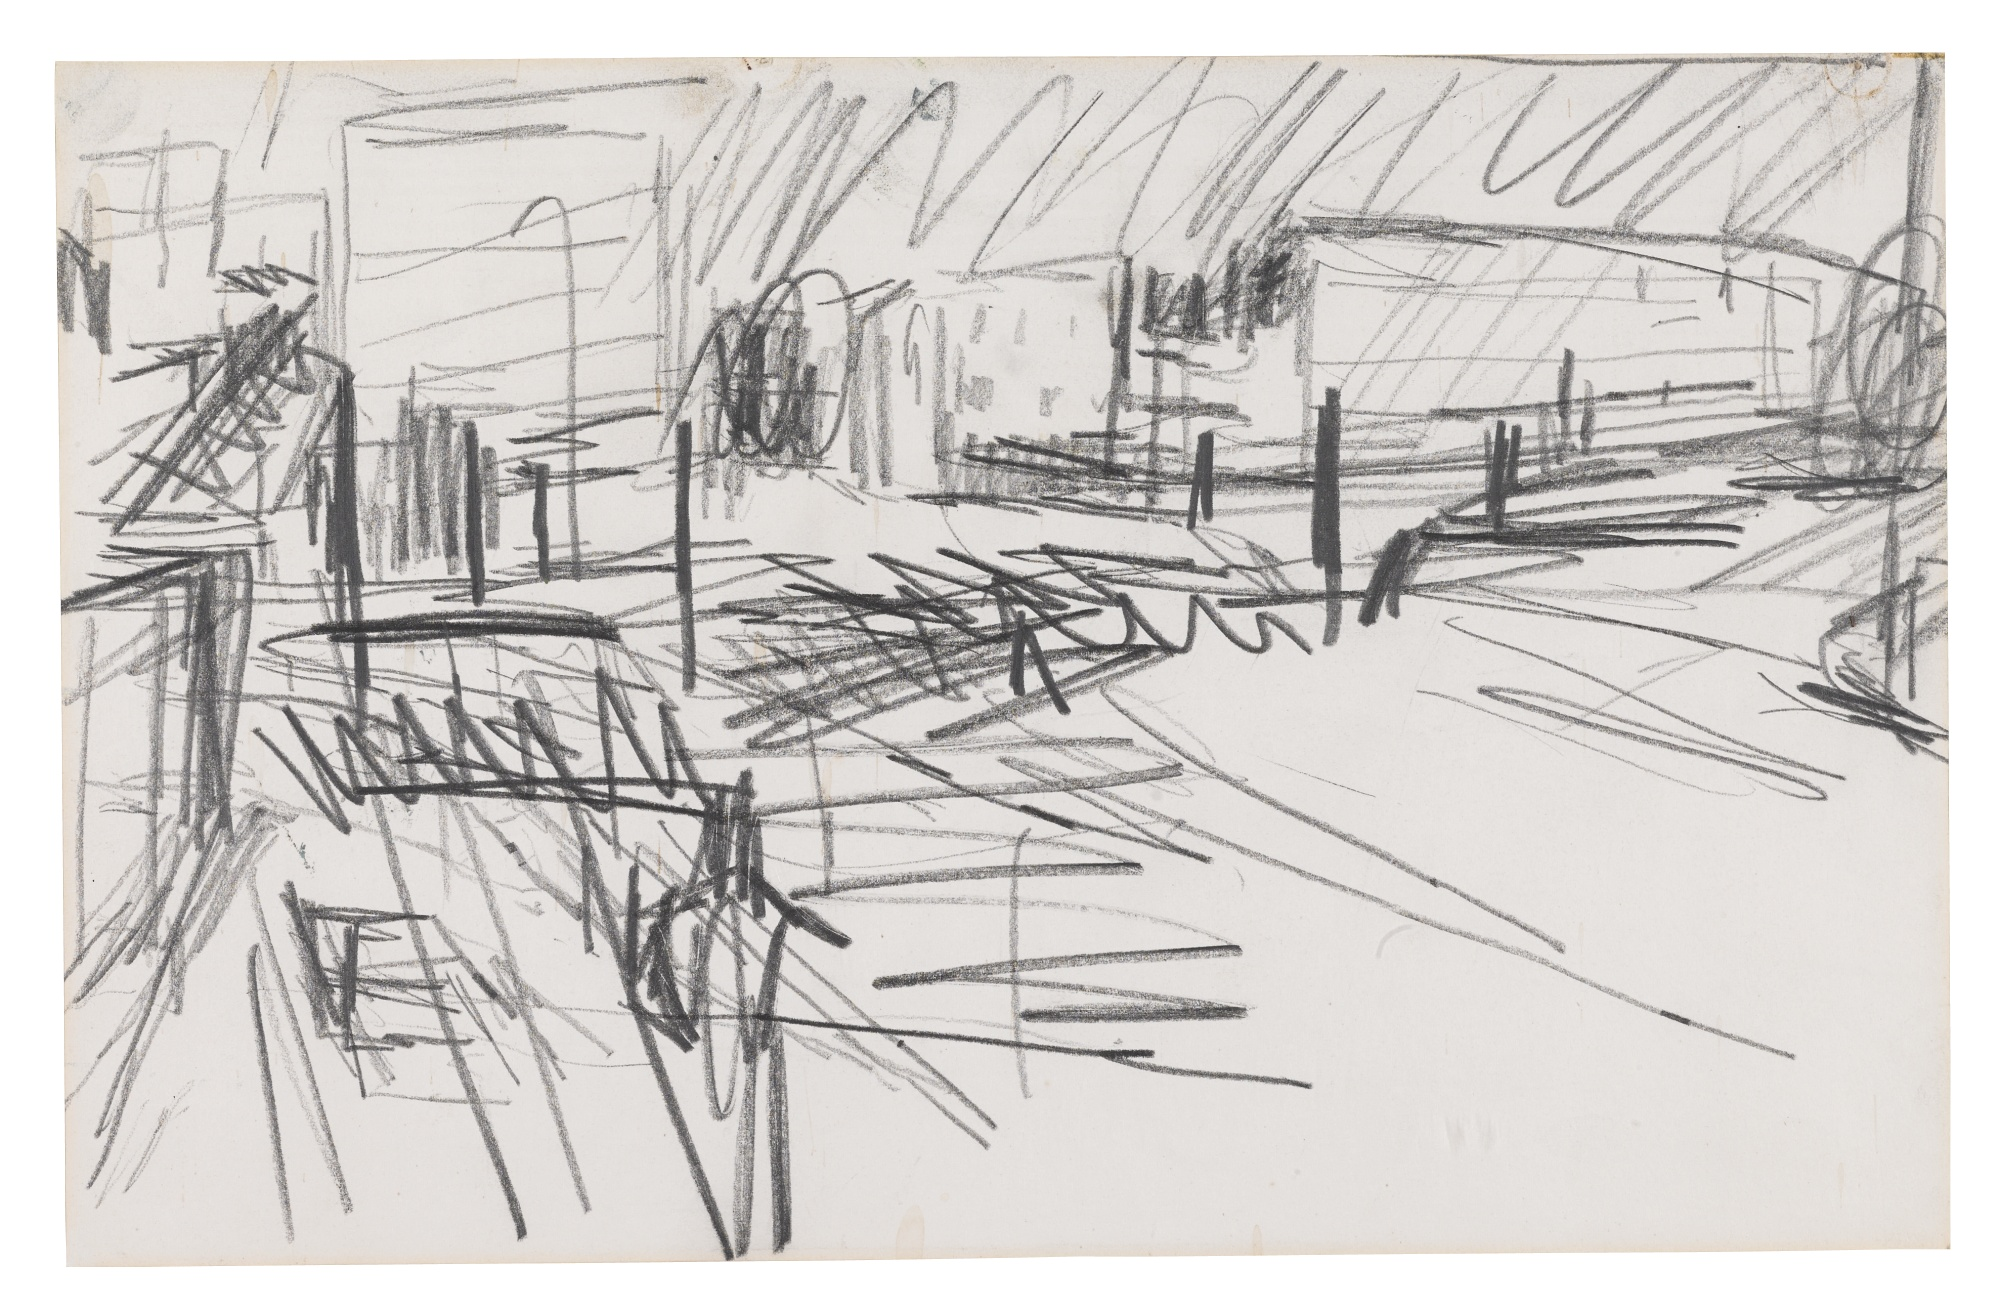 Frank Auerbach-Mornington Crescent-1960